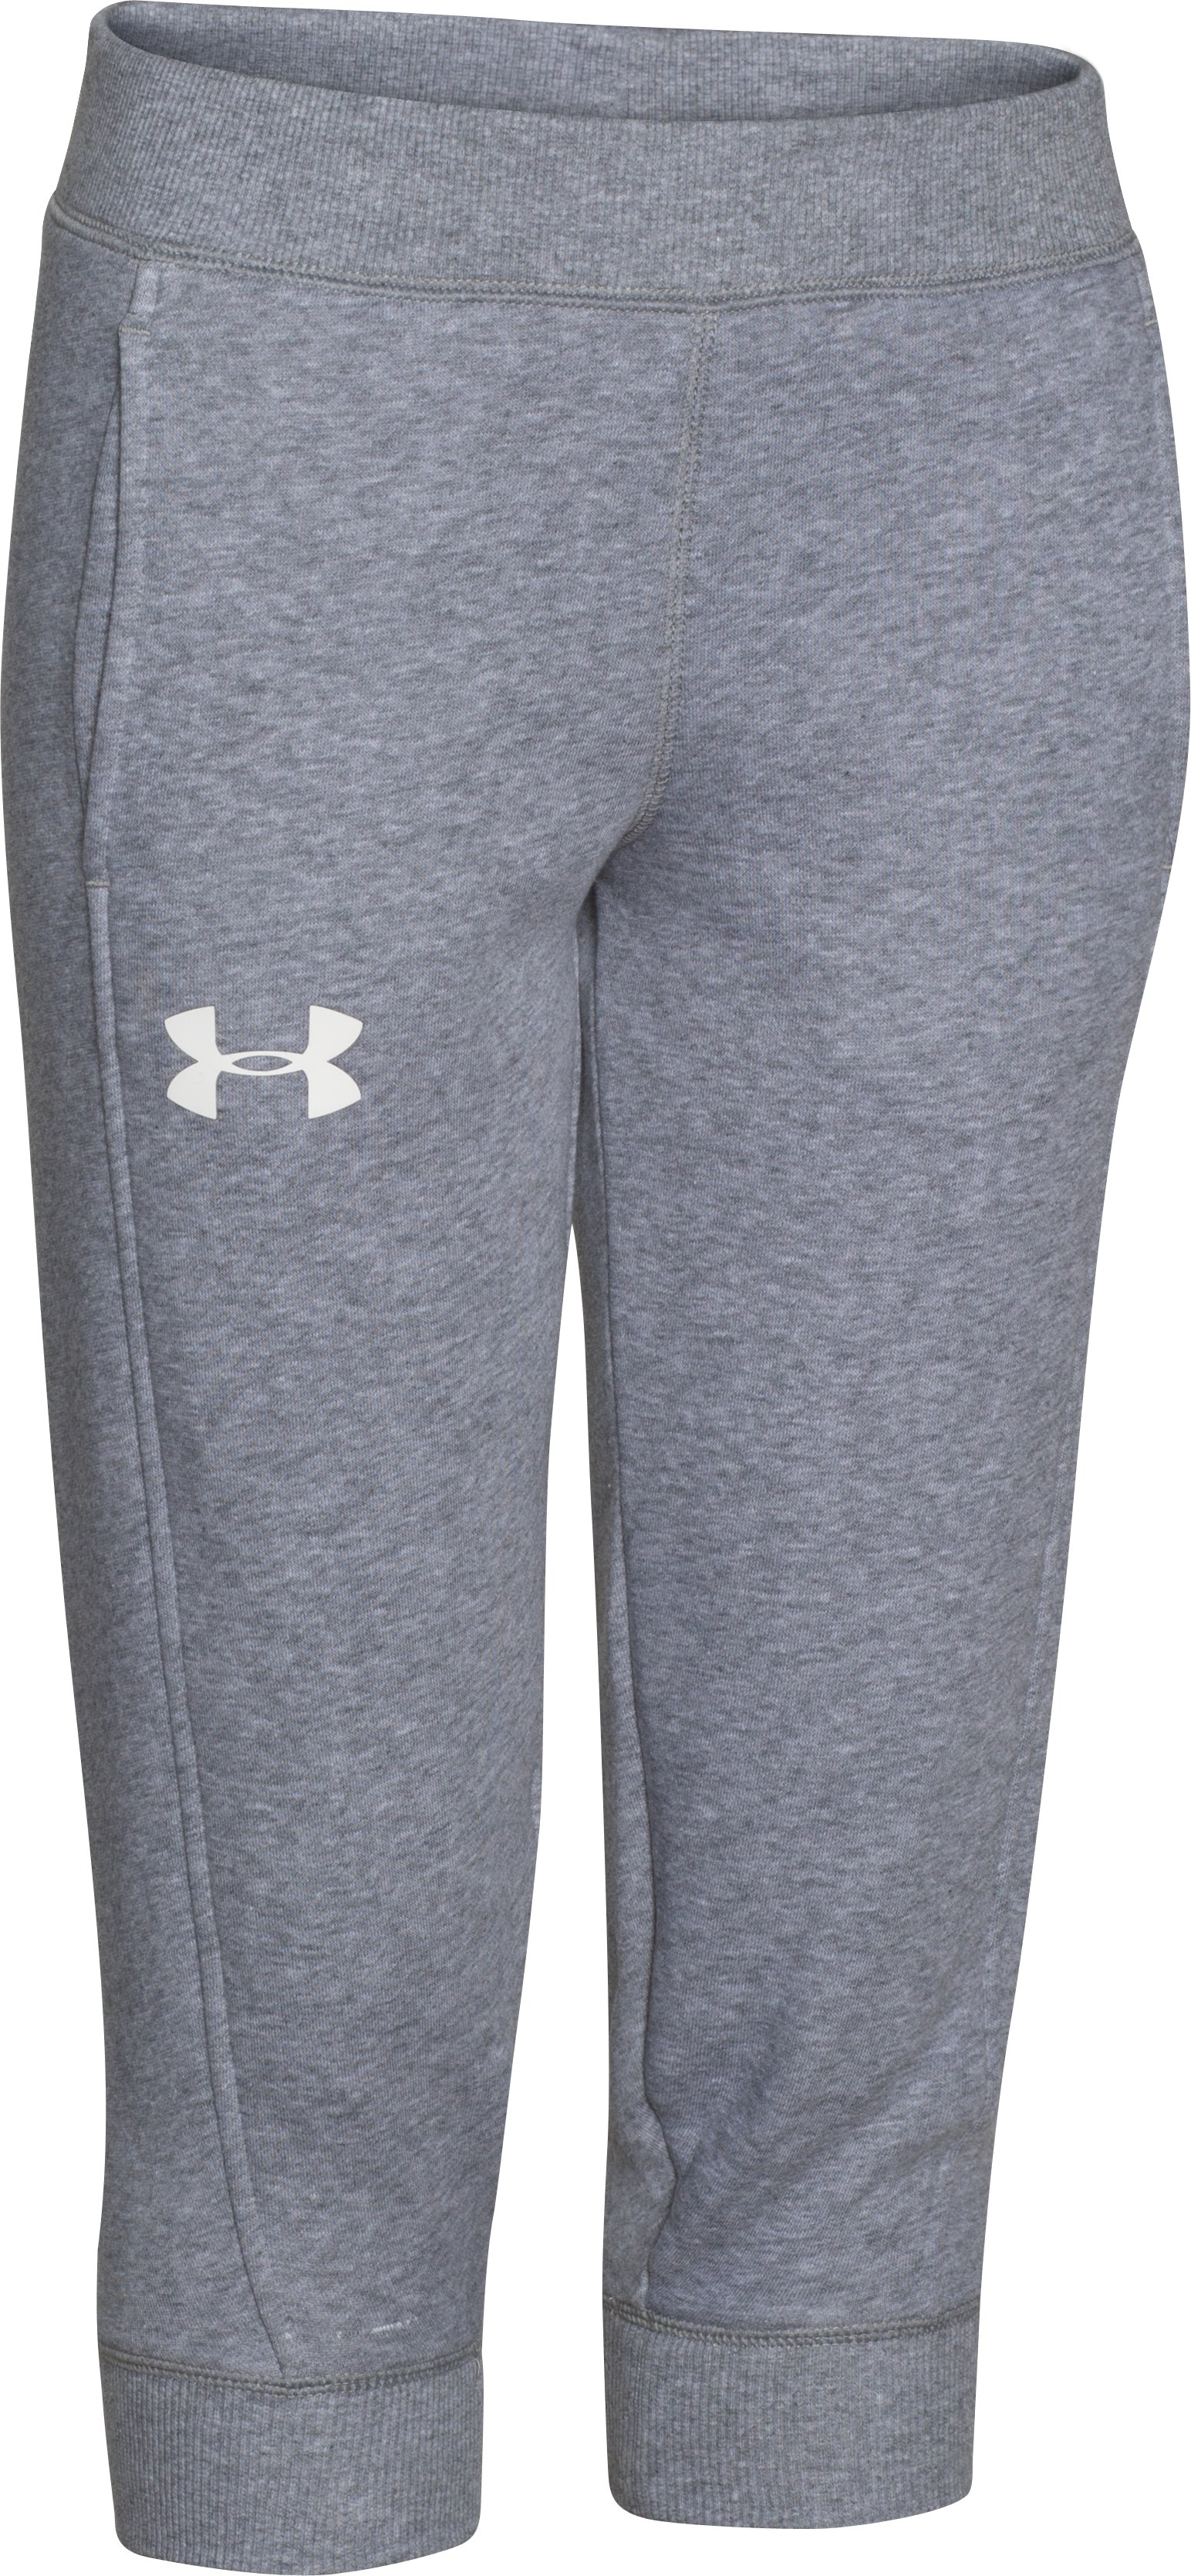 Girls' UA Rival Fleece Capri, True Gray Heather